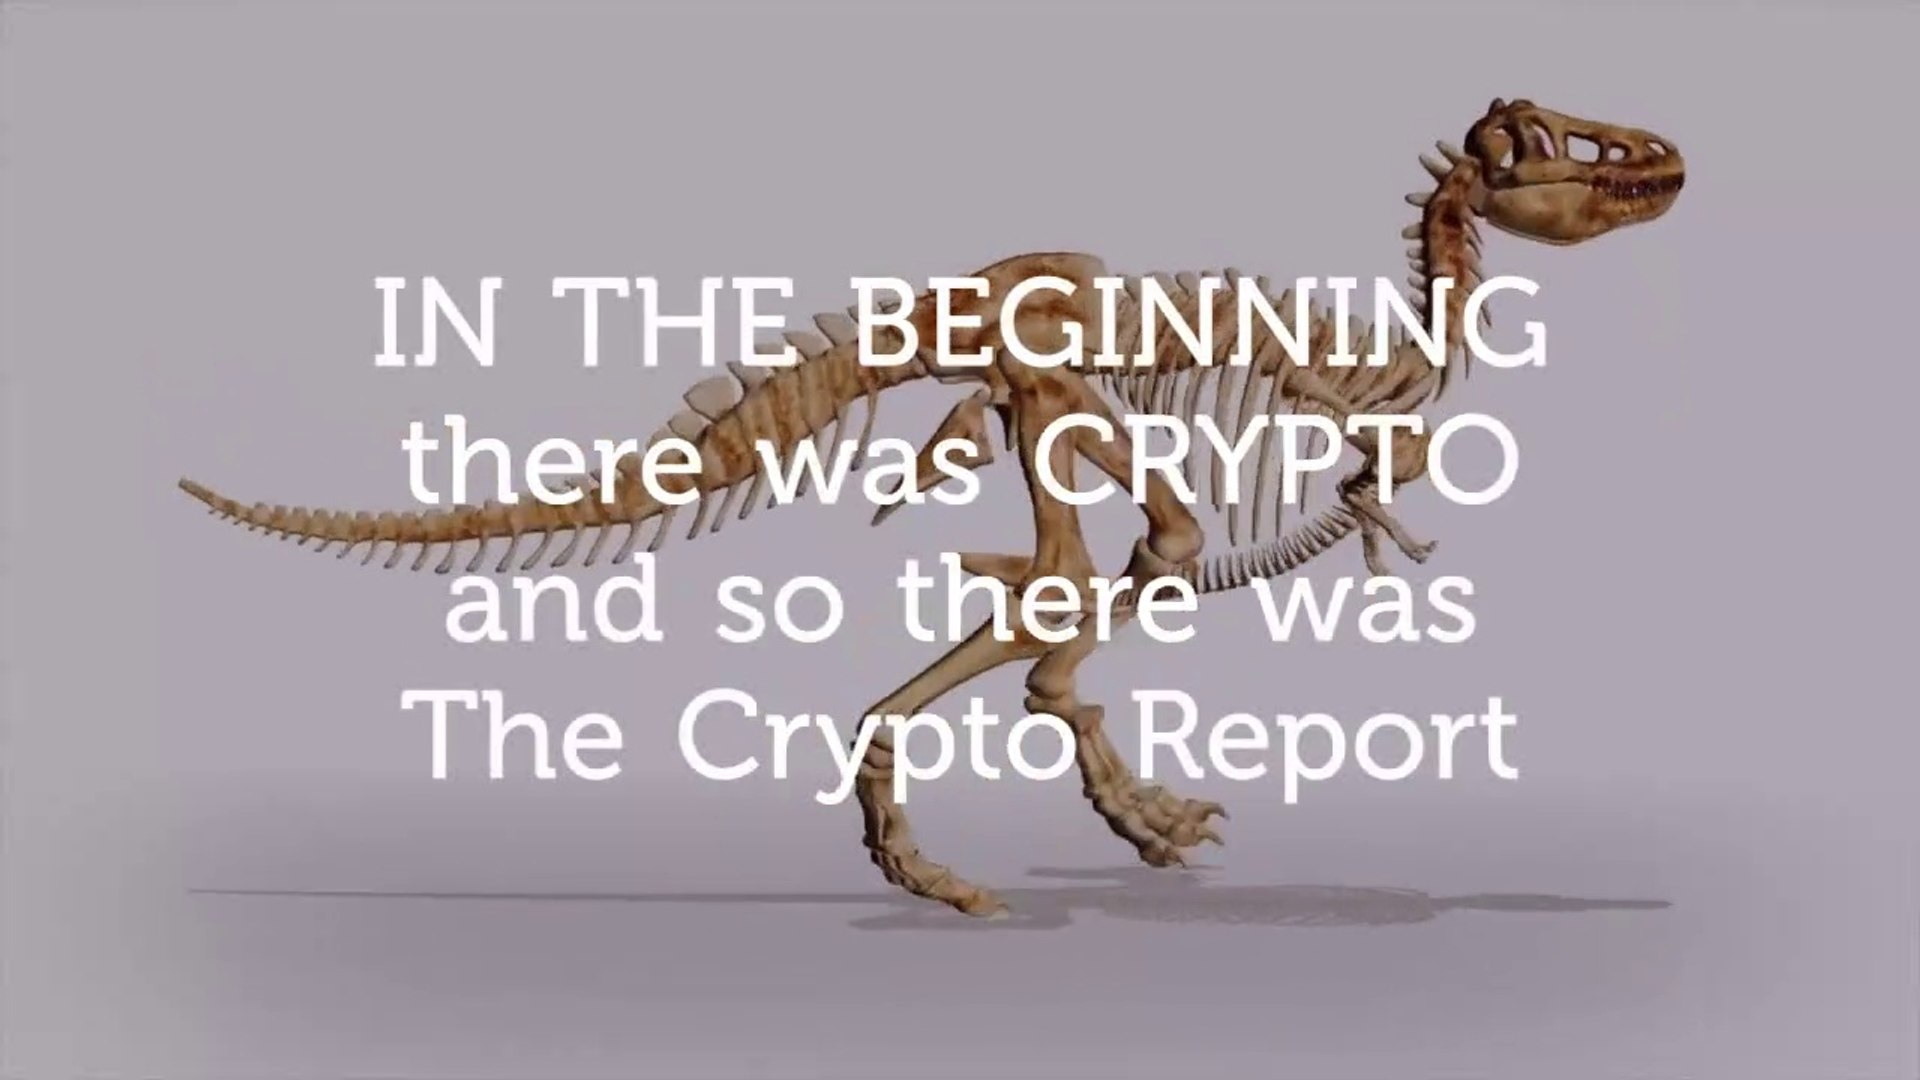 IN THE BEGINNING there was CRYPTO and so there was TheCryptoReport! Crypto Funny Advertising!